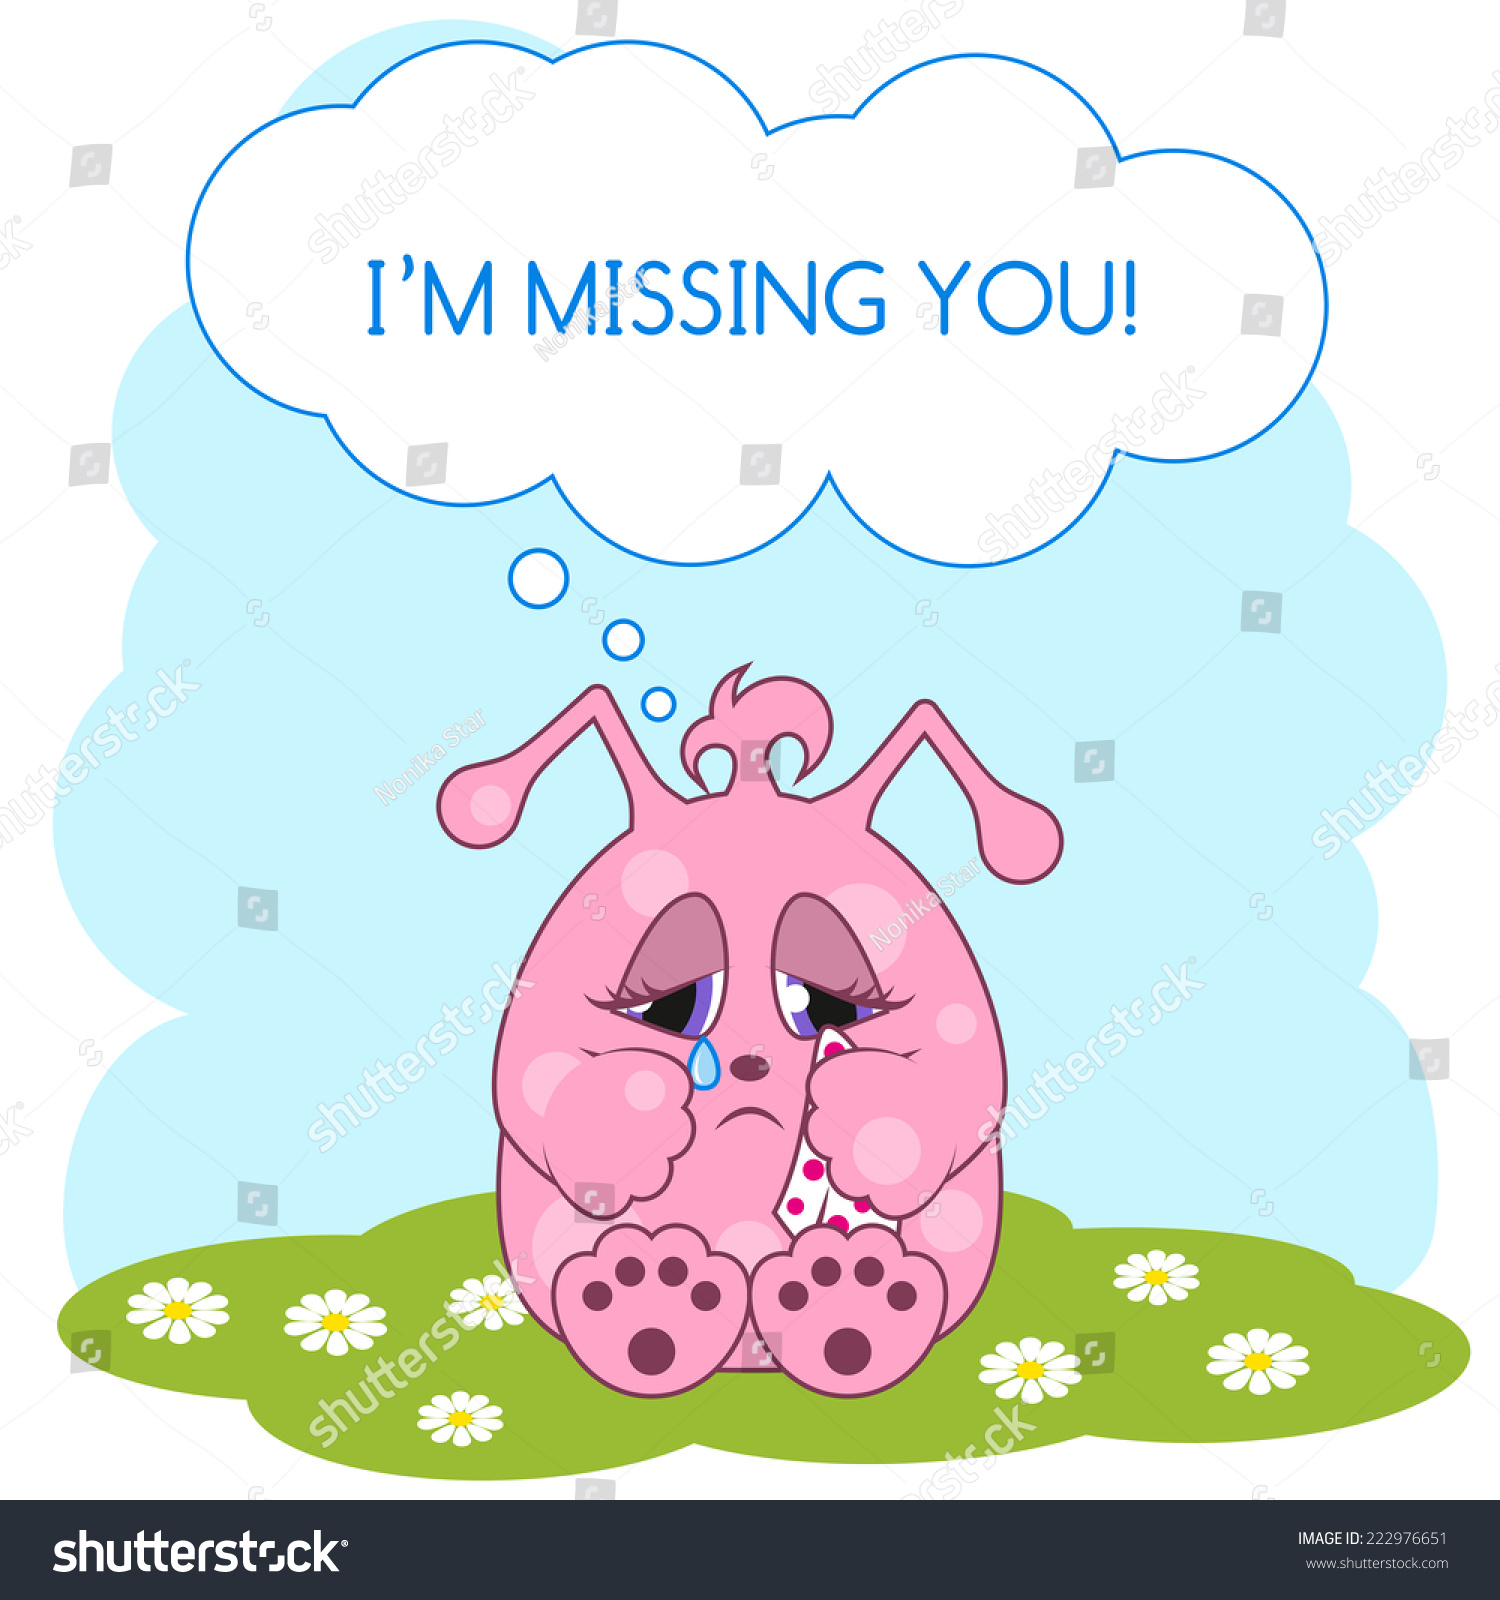 Cute pink monster missing you greeting stock vector 222976651 cute pink monster is missing you greeting card vector illustration kristyandbryce Image collections